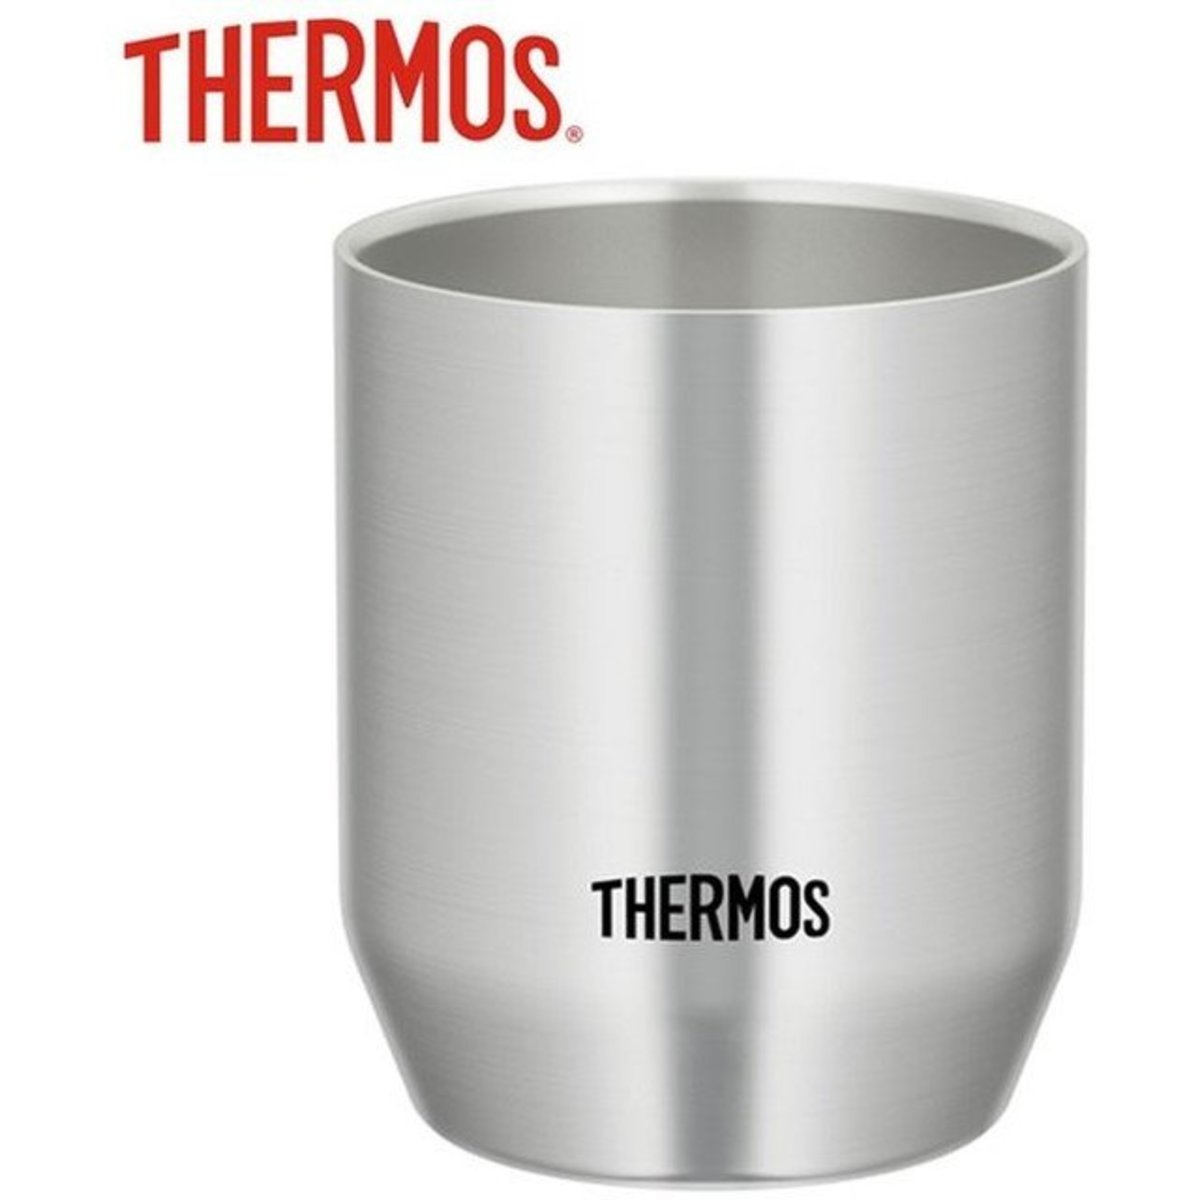 Japan THERMOS Stainless Steel Vacuum Insulated Cup JDH-360 360ml